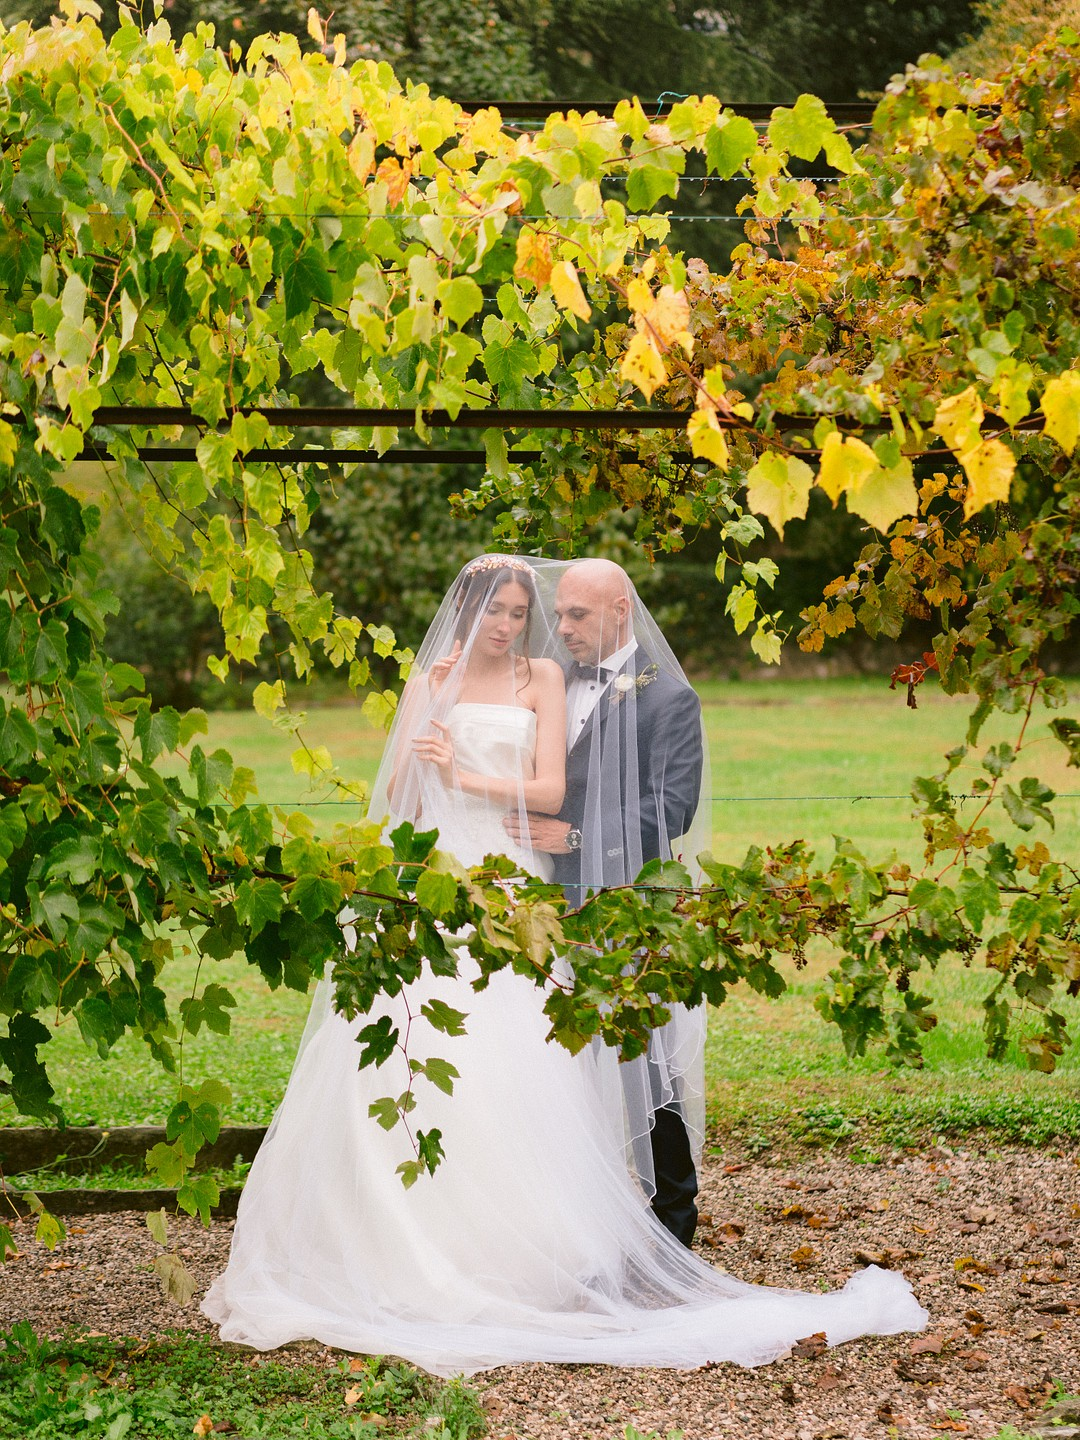 wedding picture under grapevines